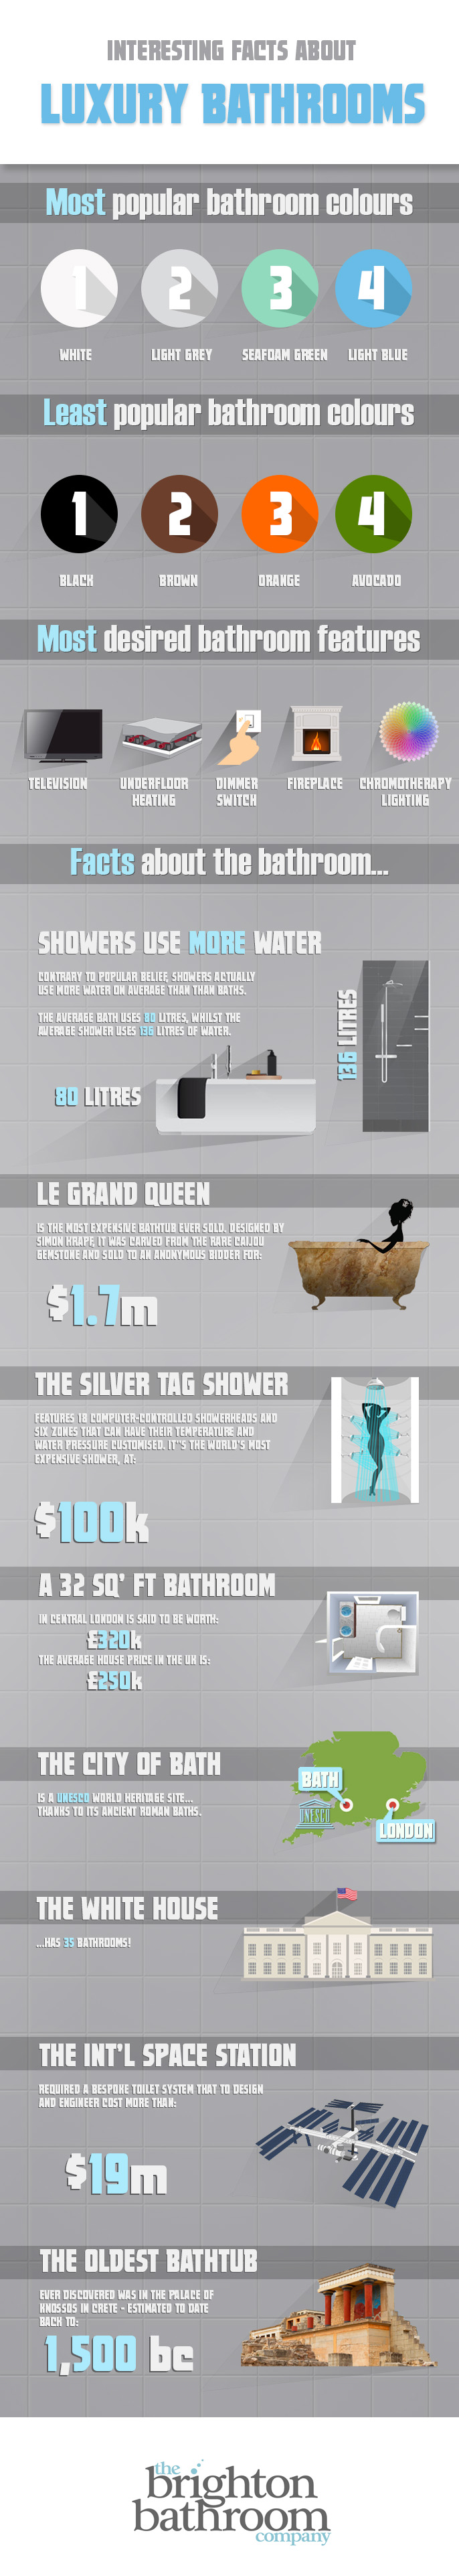 Luxury bathroom Facts